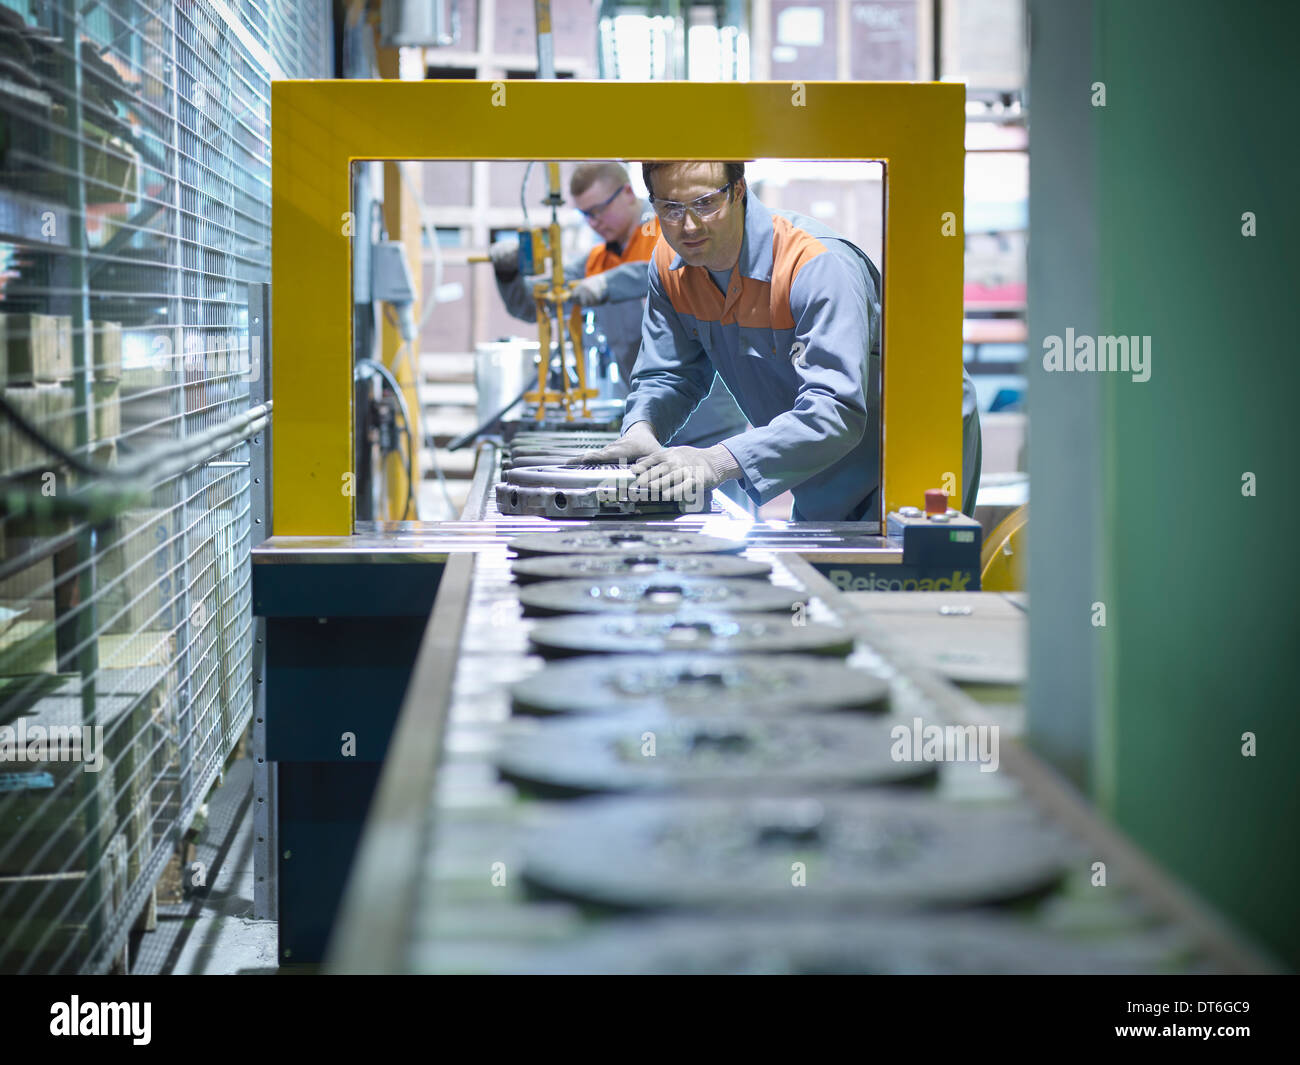 Workers on production line in industrial clutch factory - Stock Image